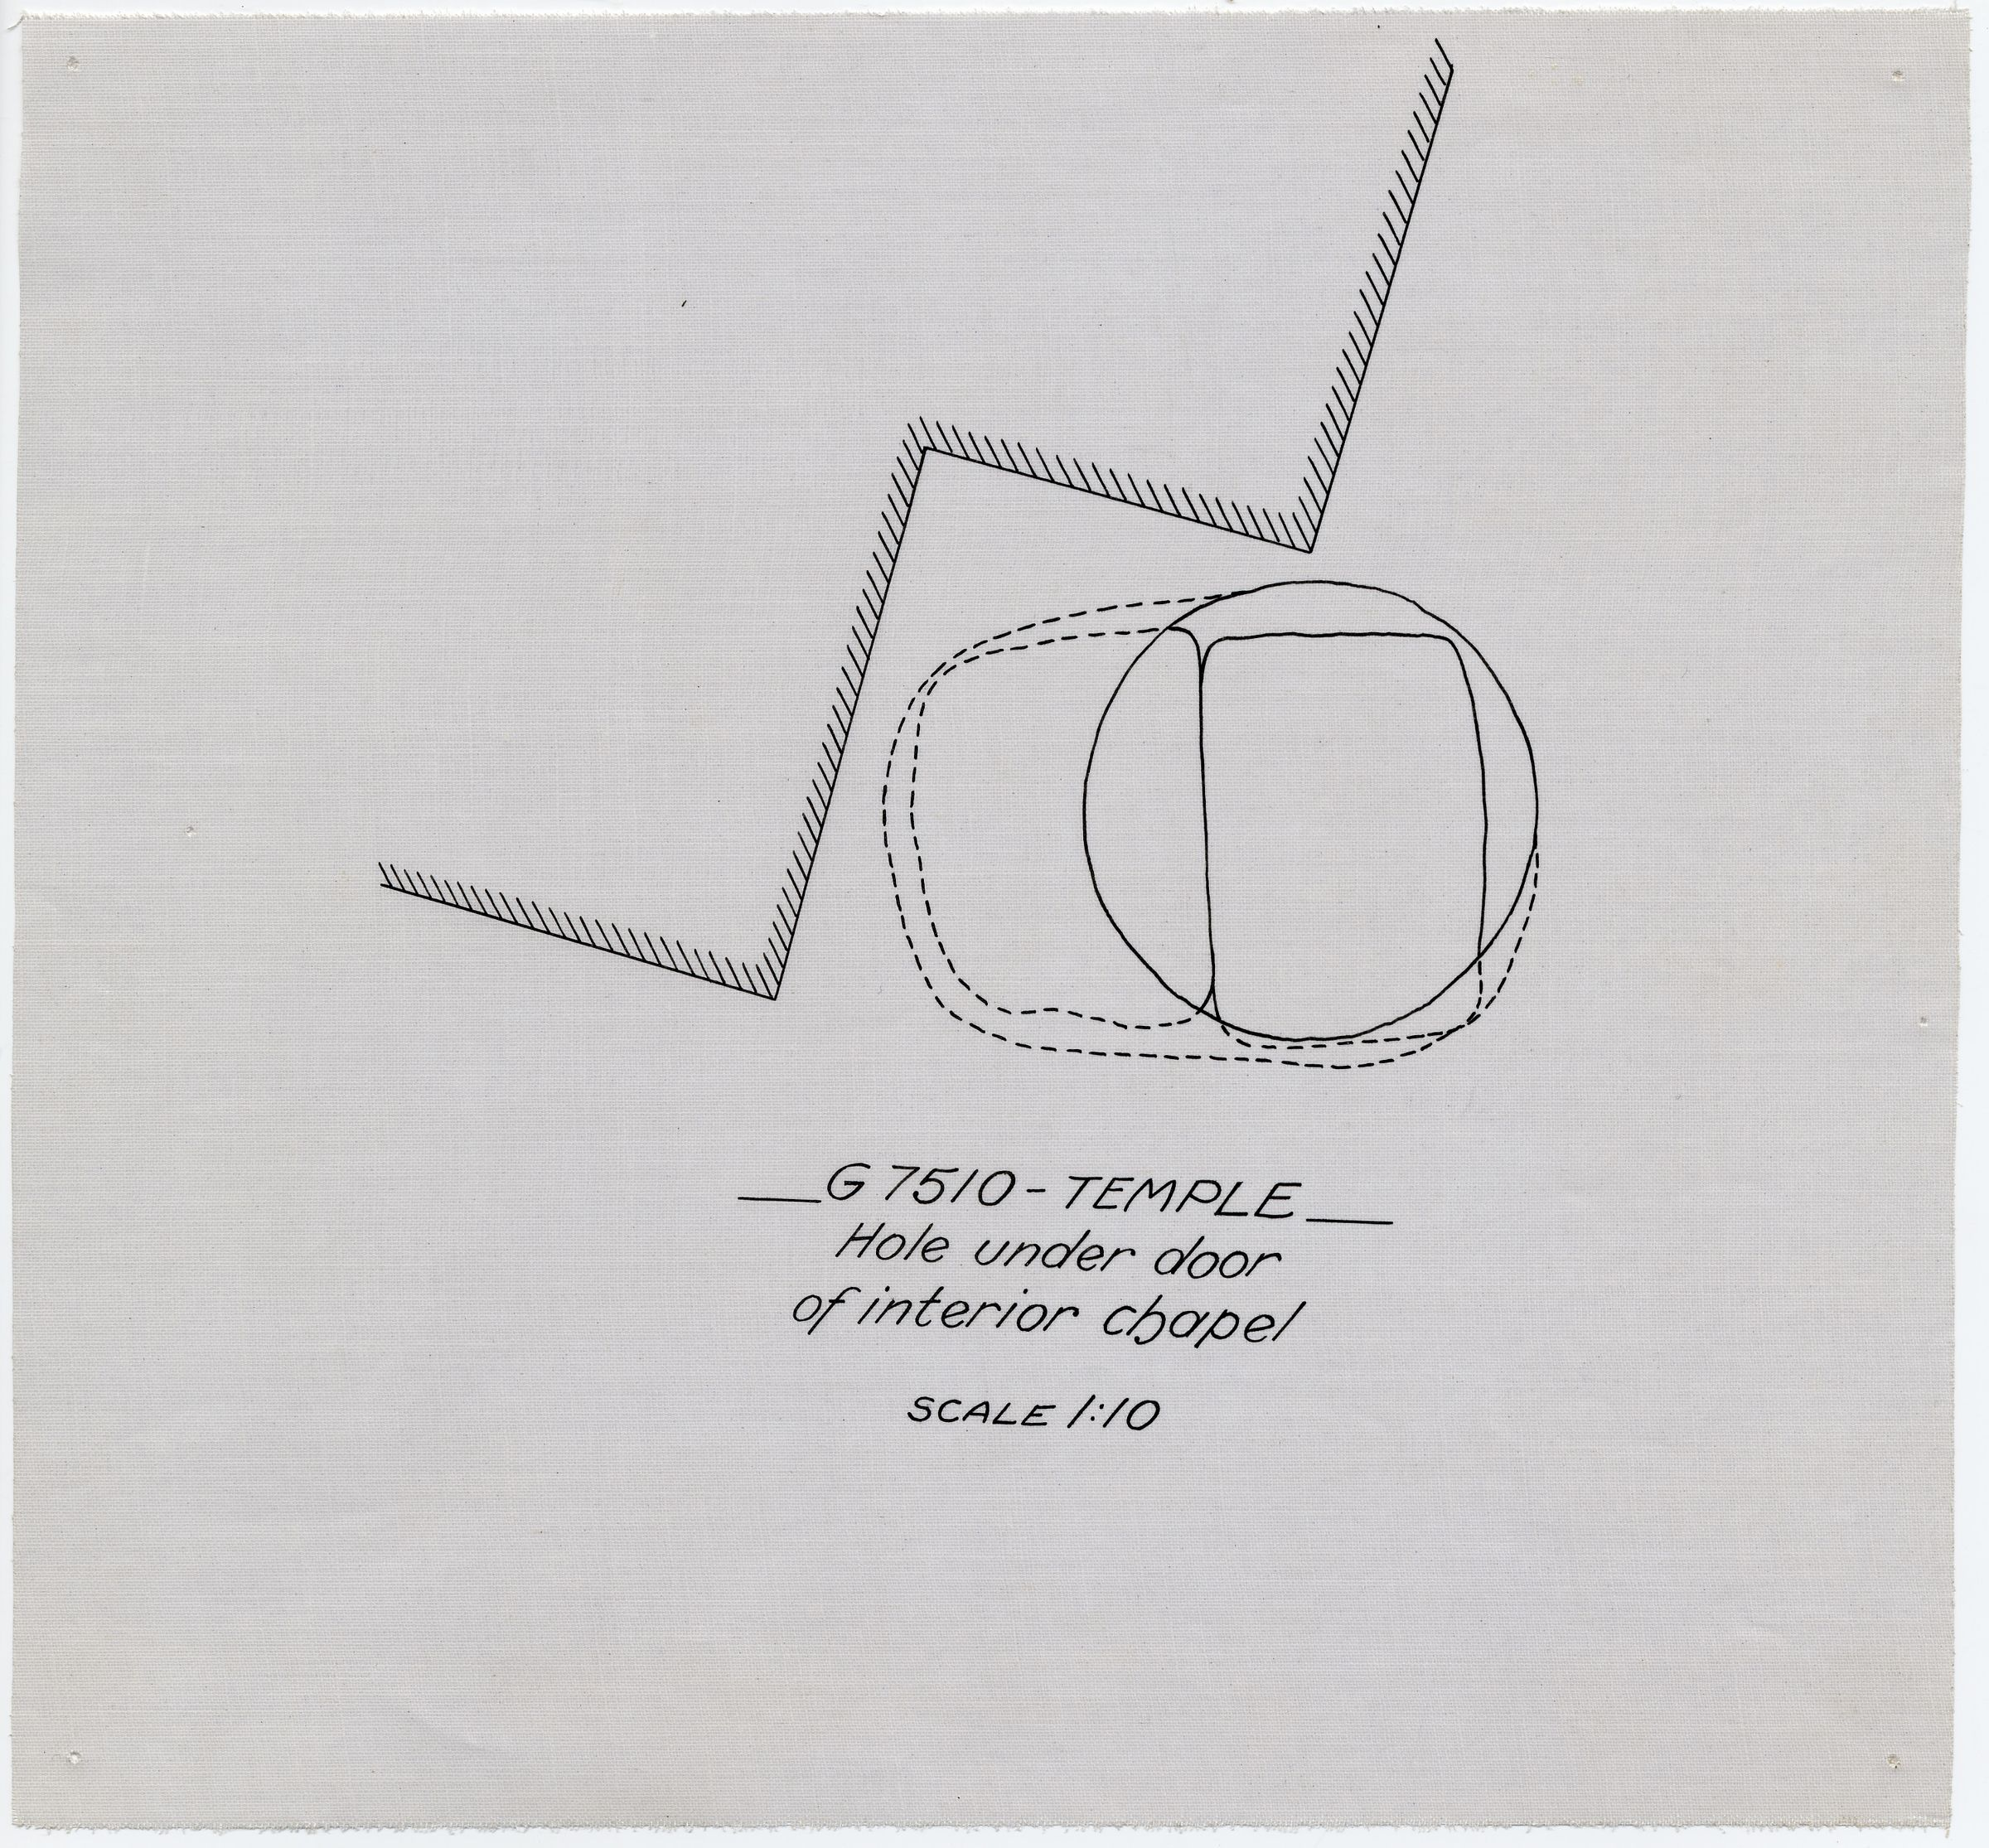 Maps and plans: Plan of G 7510, Plan of chapel, hole under door